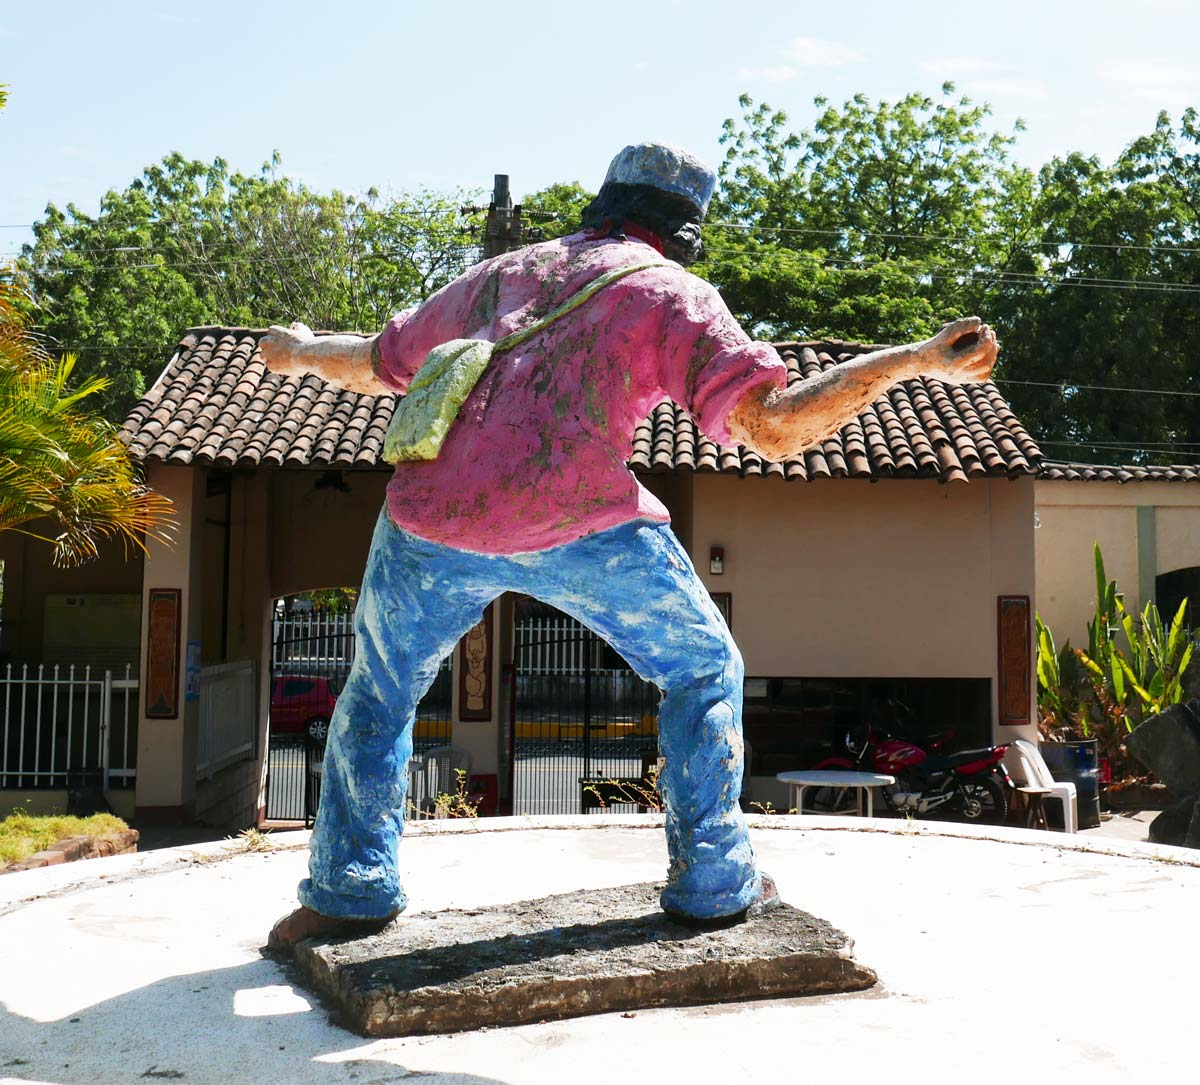 Guerilla statue in museum of Traditions and Legends in Leon, Nicaragua